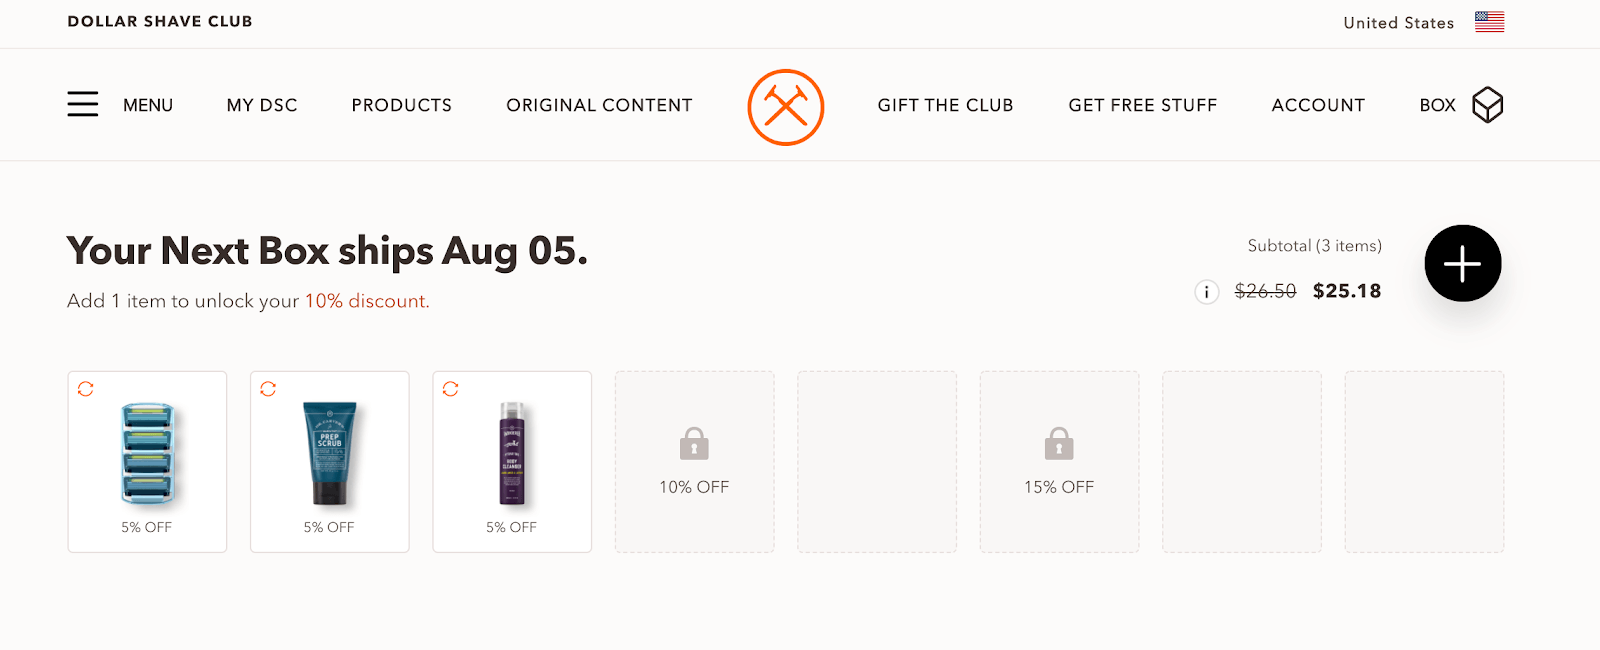 Dollar Shave Club's account dashboard lets you customize your order and the shipping details super easily.